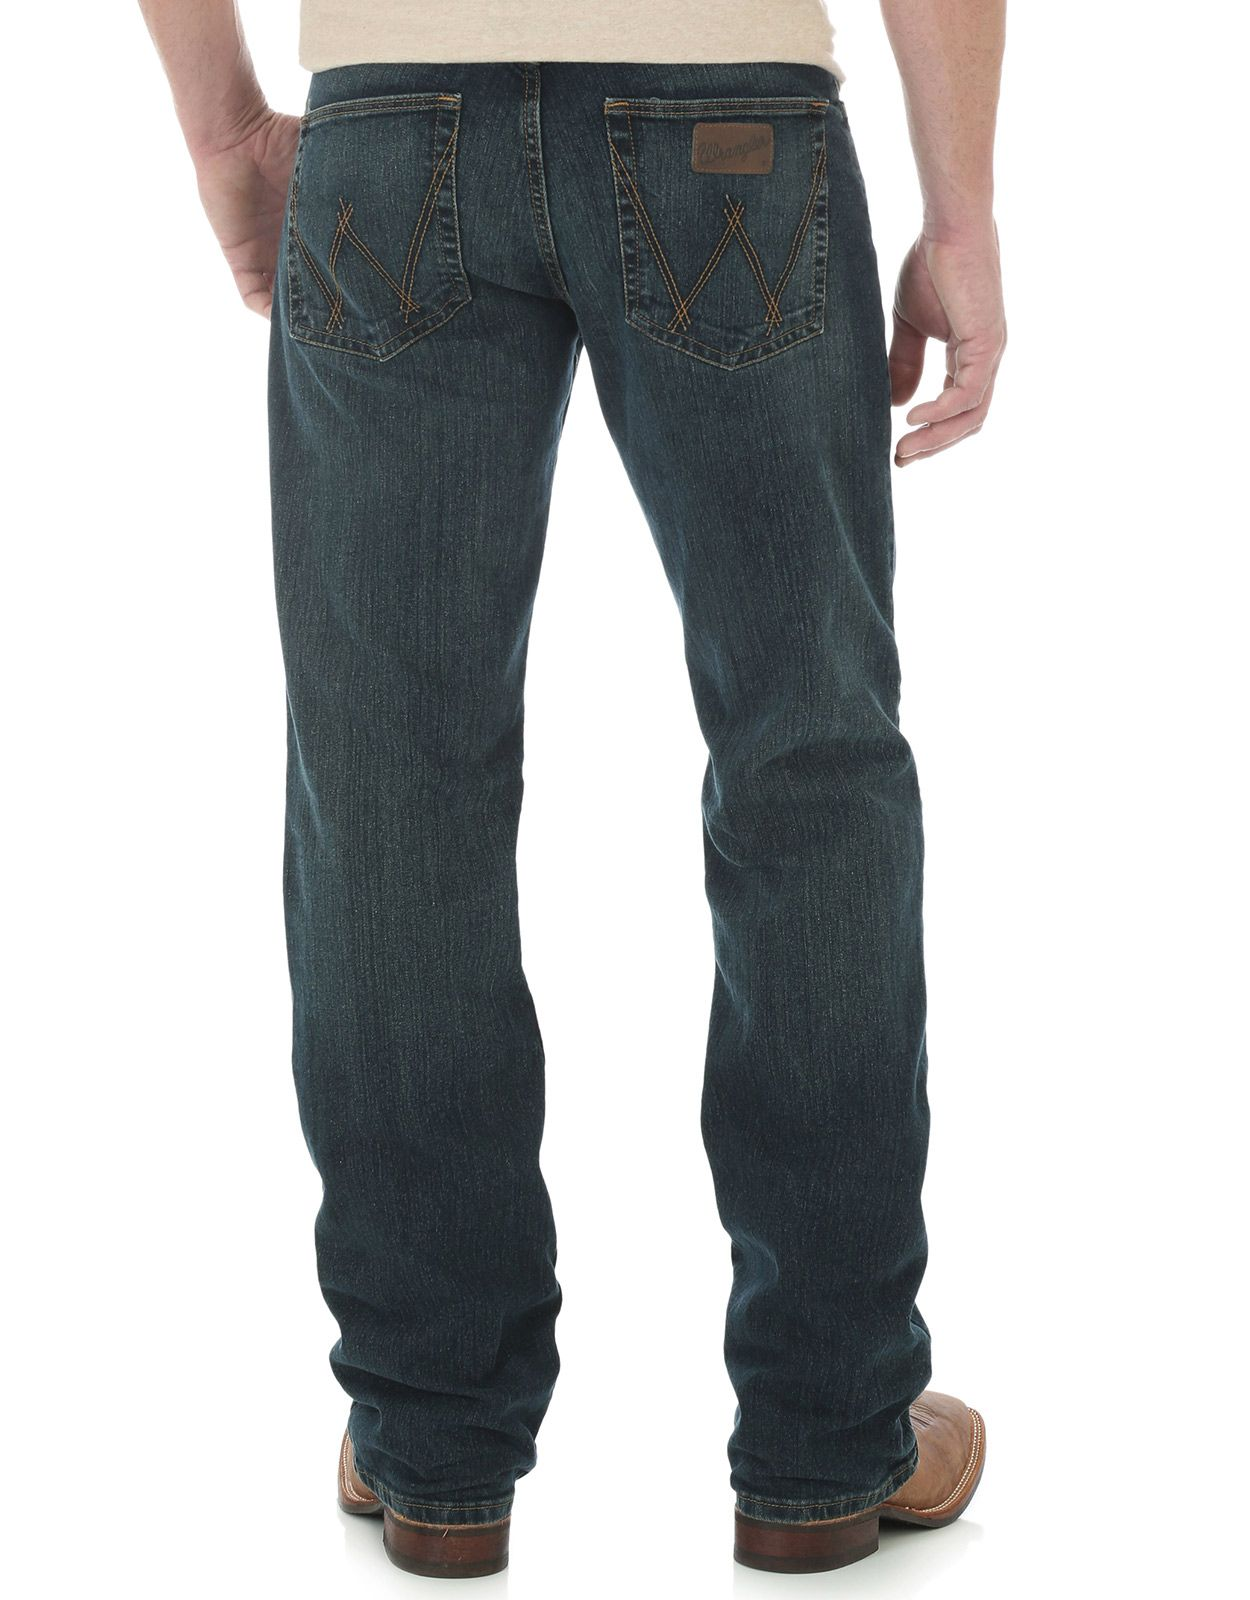 Wrangler Men's 02 Advanced Comfort Stretch Low Rise Slim Fit Boot Cut Jeans - Root Beer